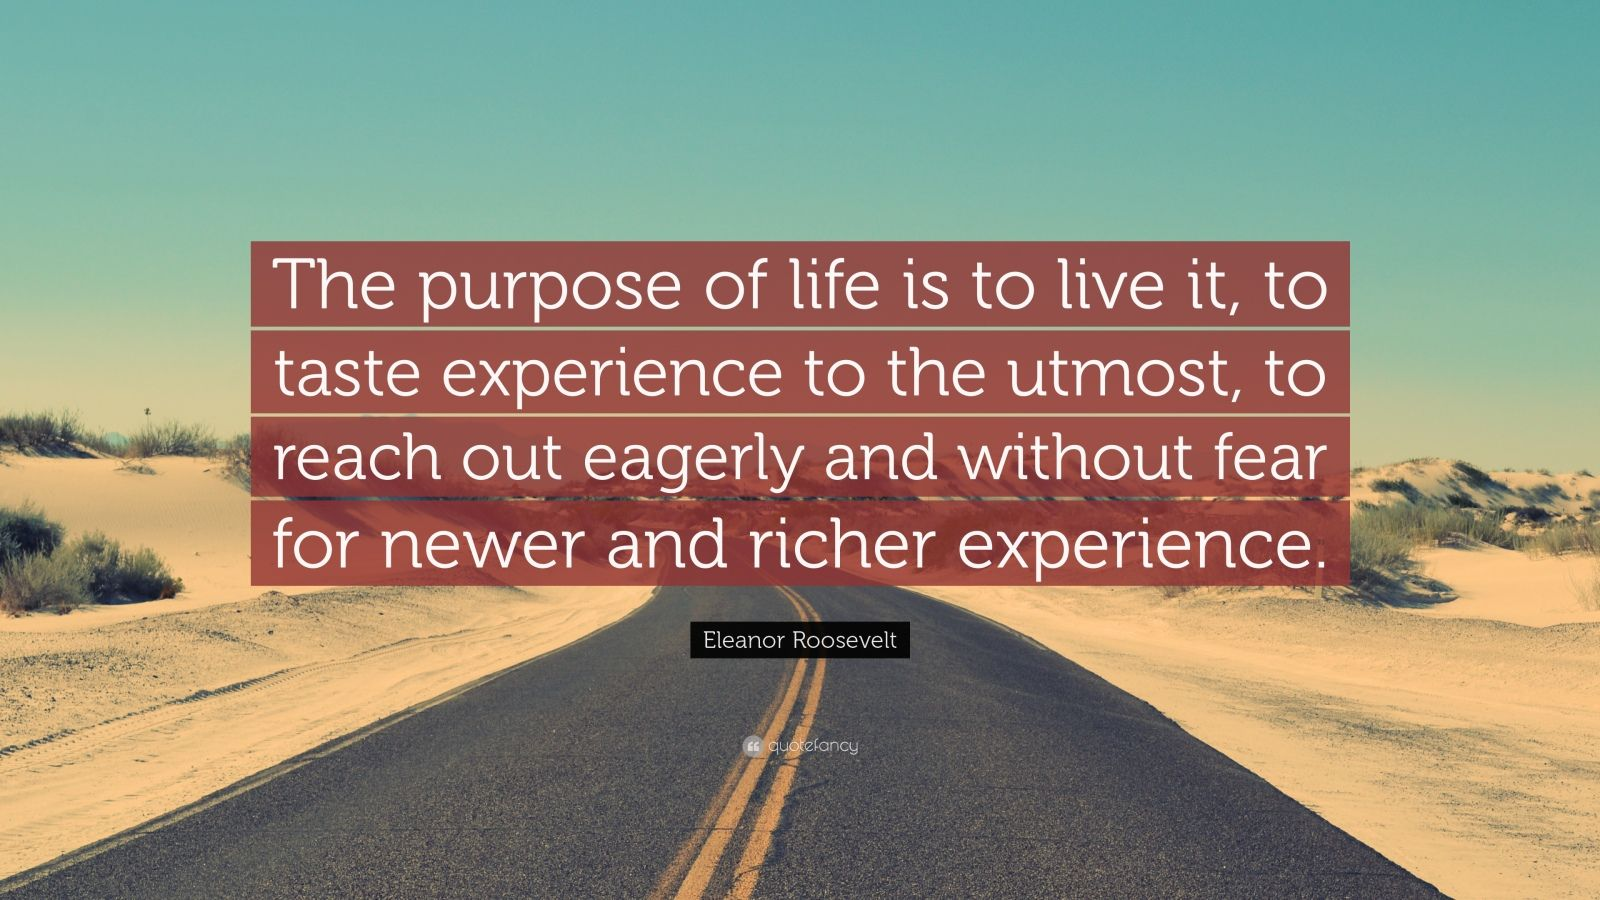 Eleanor Roosevelt Quote Wallpaper Eleanor Roosevelt Quote The Purpose Of Life Is To Live